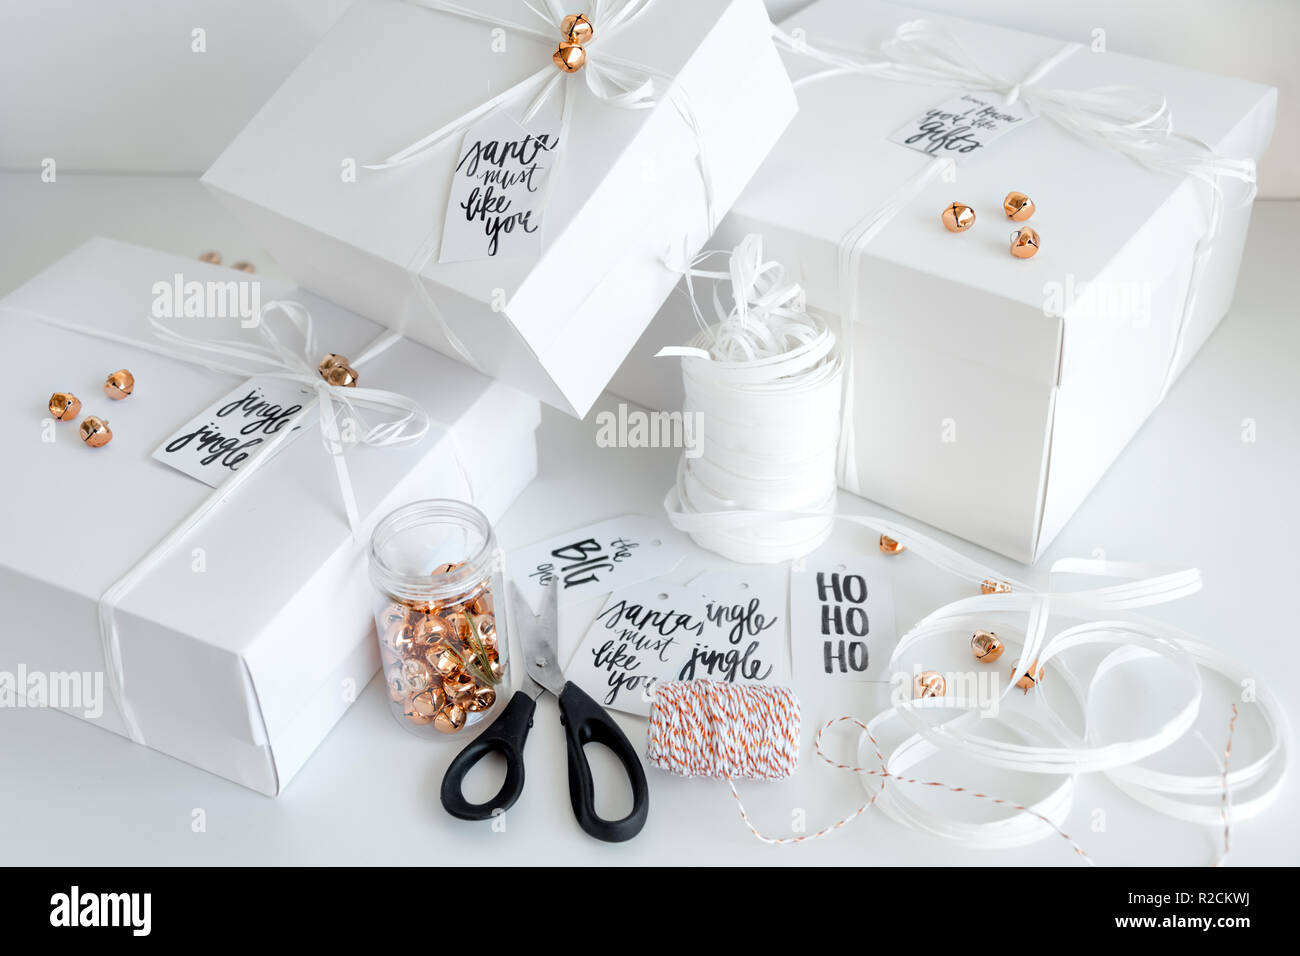 New Year Gifts White Boxes On Light Background With Winter Holidays